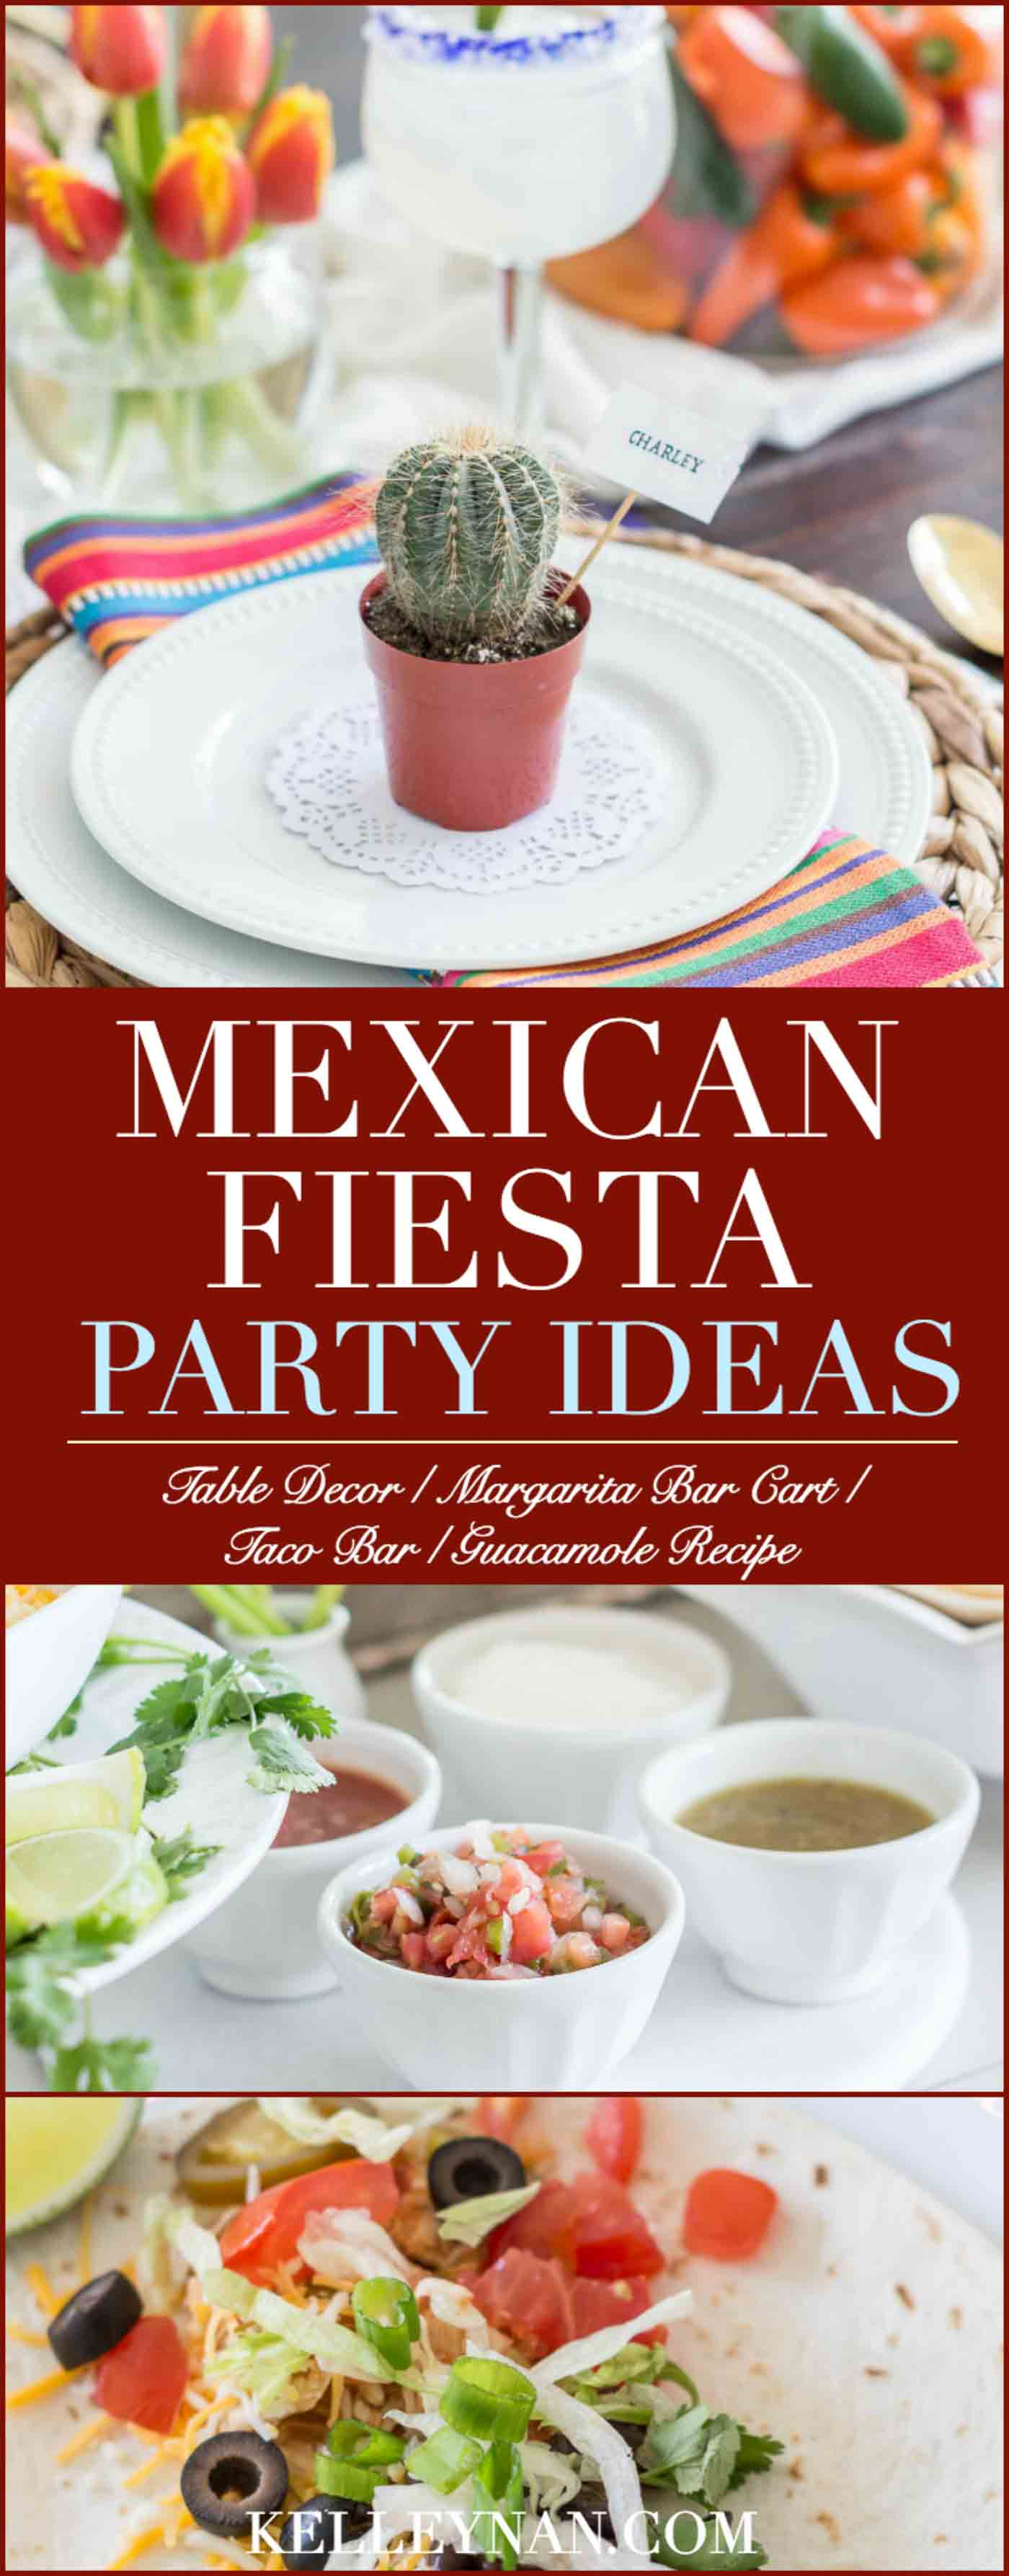 Decor and Food Ideas for a Mexican Fiesta Party with a DIY Taco Bar